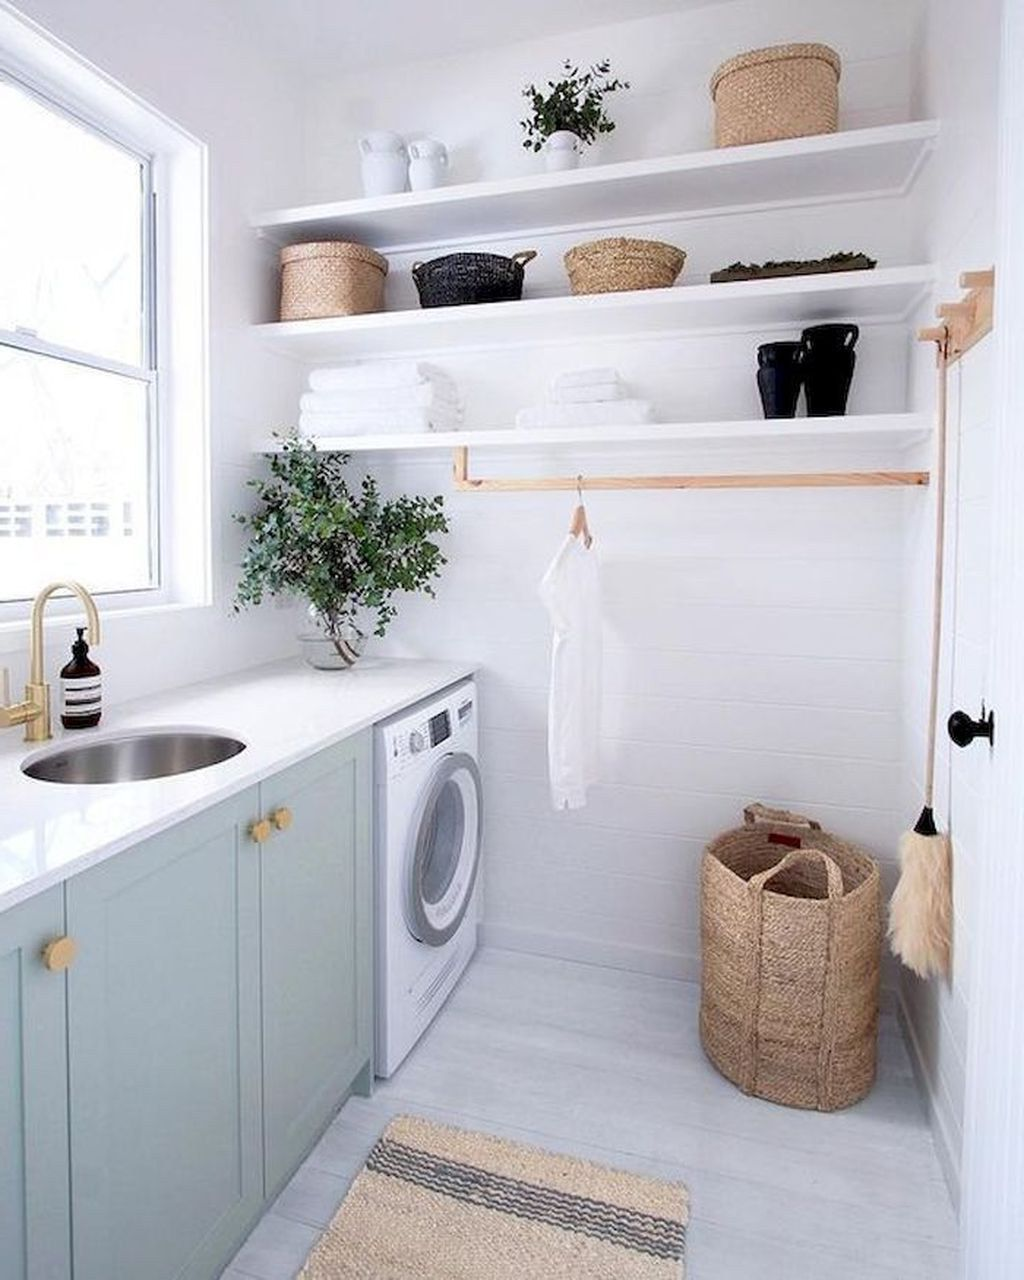 33 New Laundry Room Design Ideas With Scandinavian Style 16 Best Home Design Ideas Elegant Laundry Room Modern Laundry Rooms Laundry Room Design